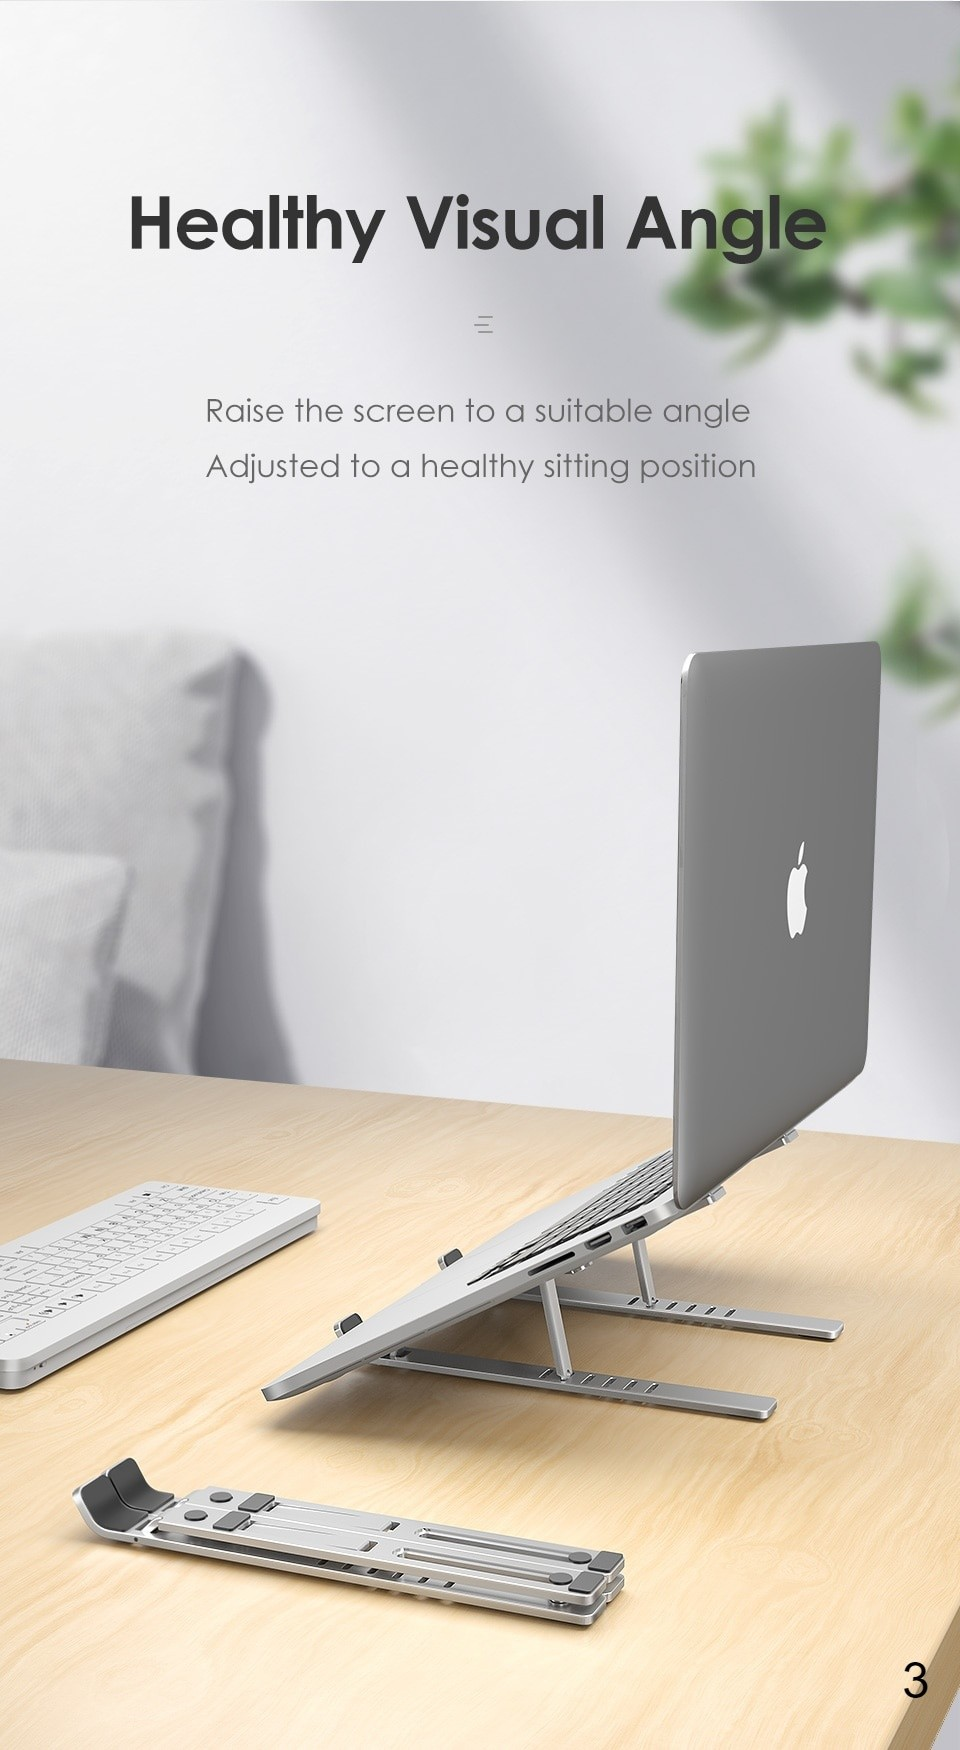 foldable portable design with healthy visual angle laptop stand